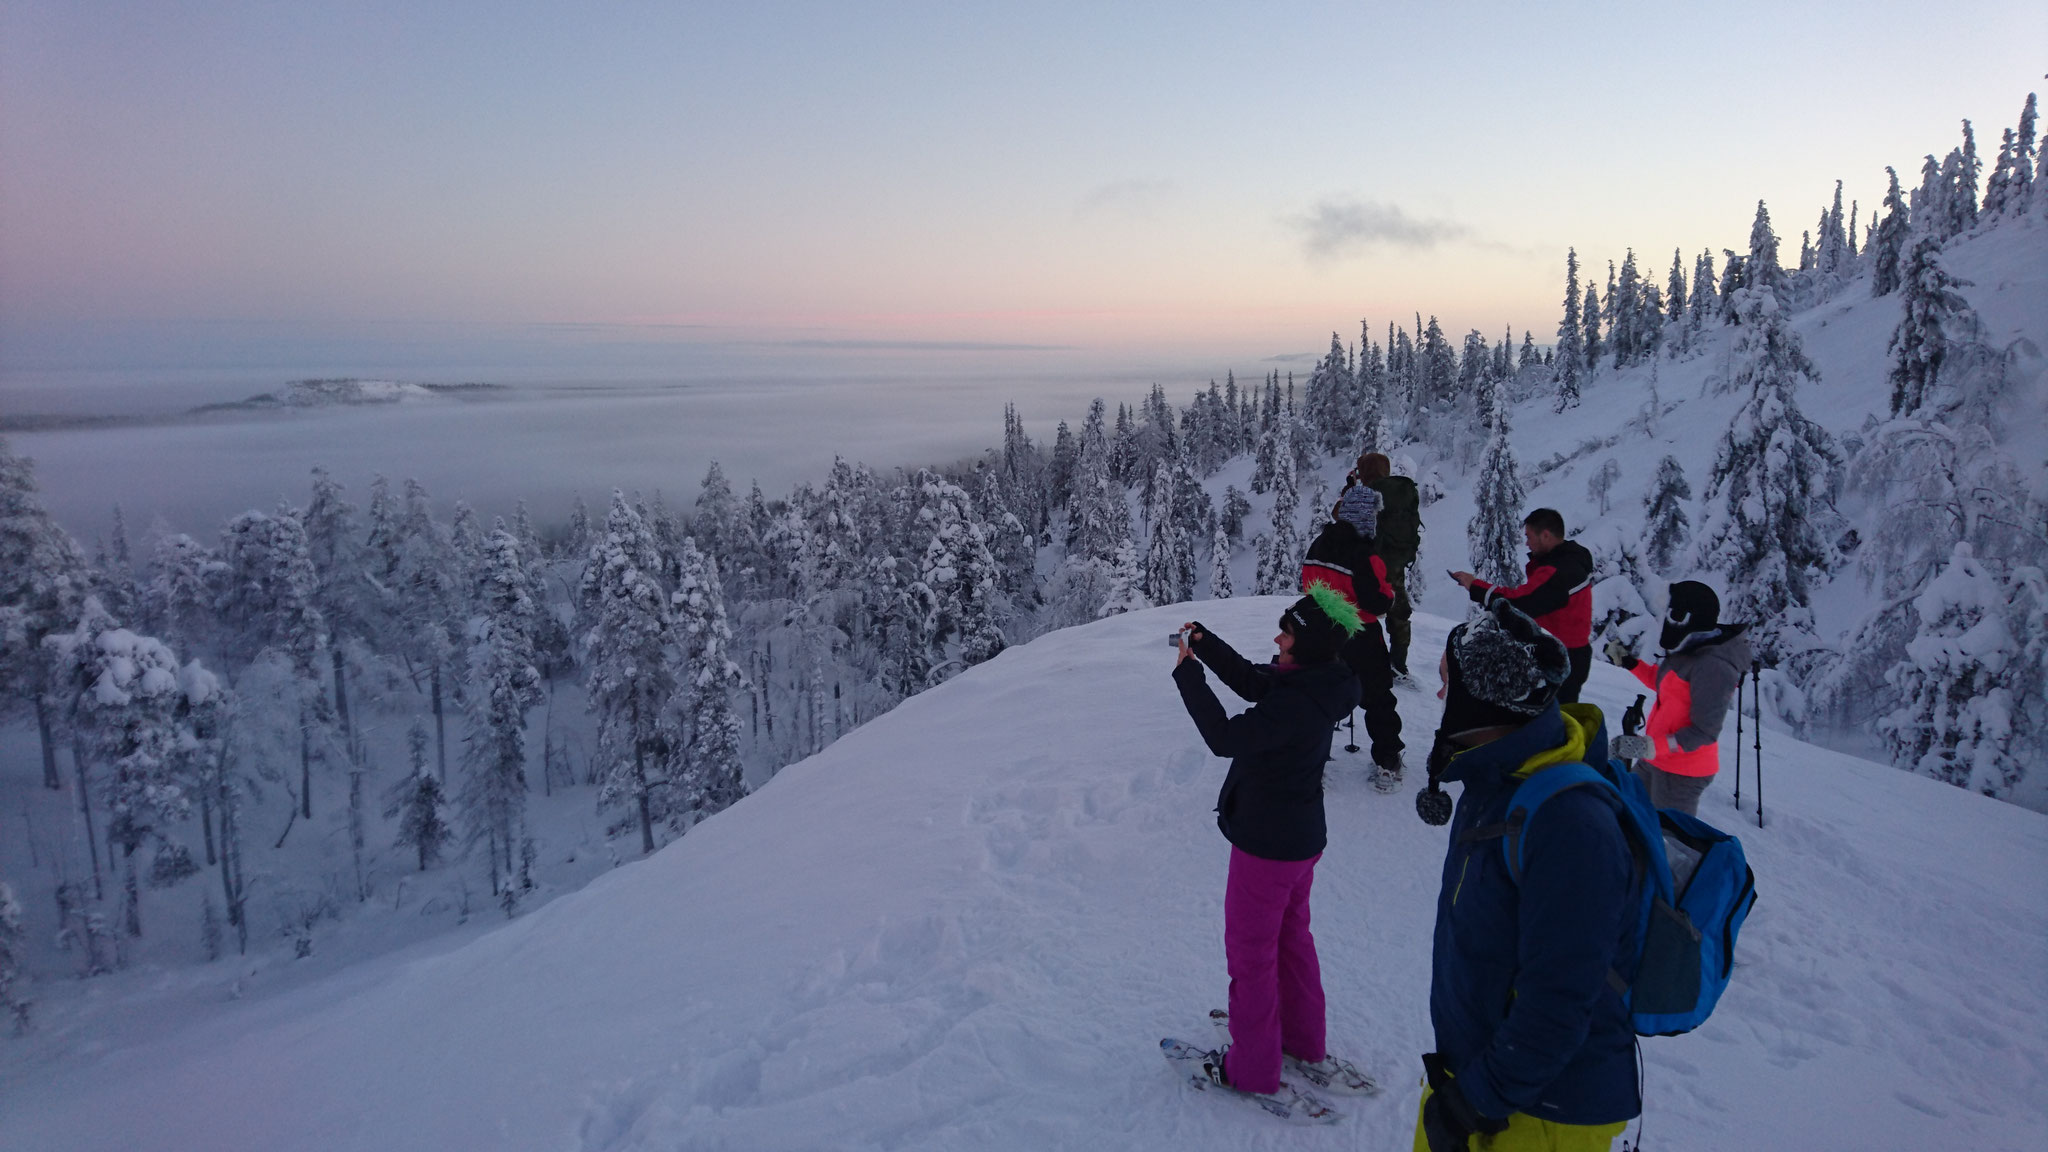 Another beautiful day in the lappish backcountry...